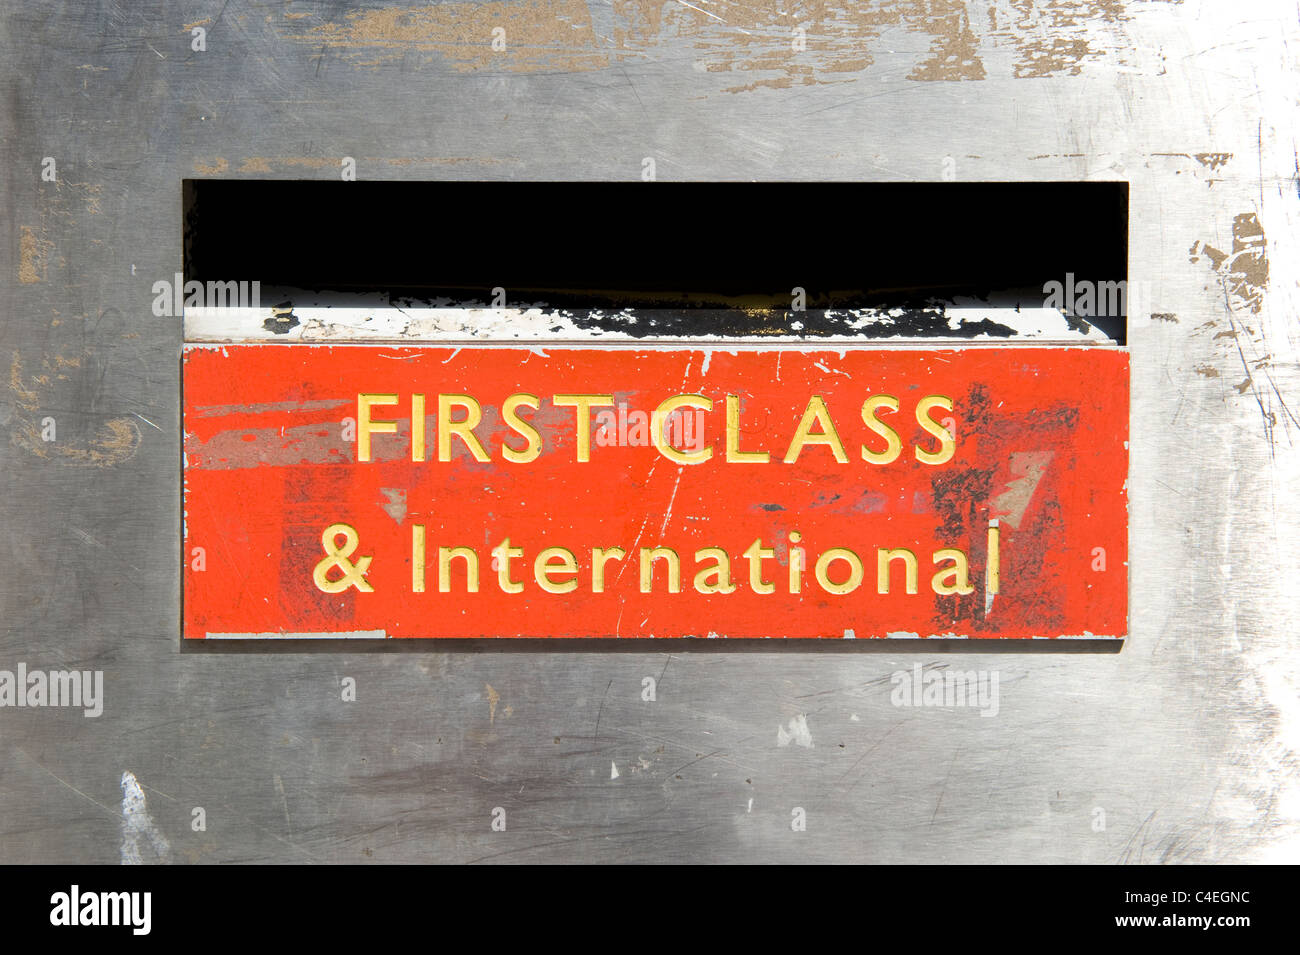 A first class and international post office post box. - Stock Image